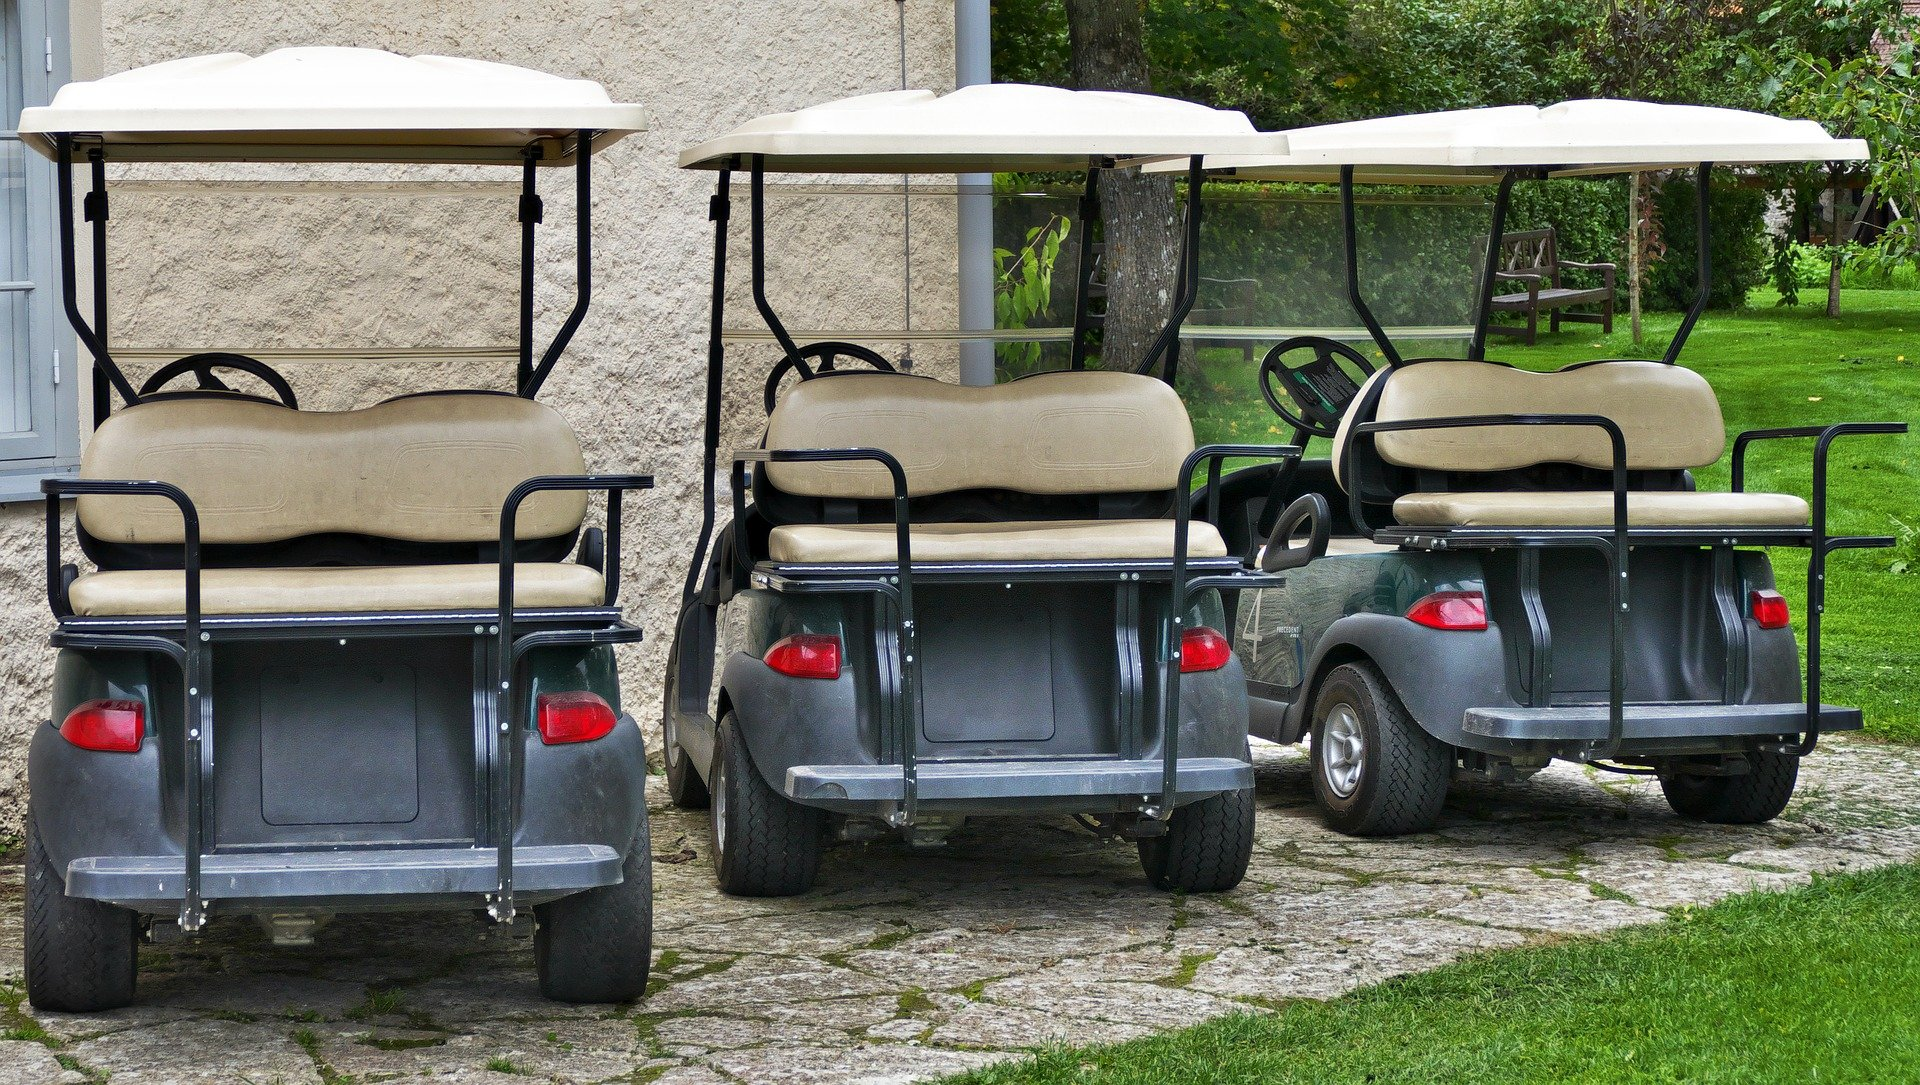 Golf Carts in Georgia - VeteranCarDonations.org